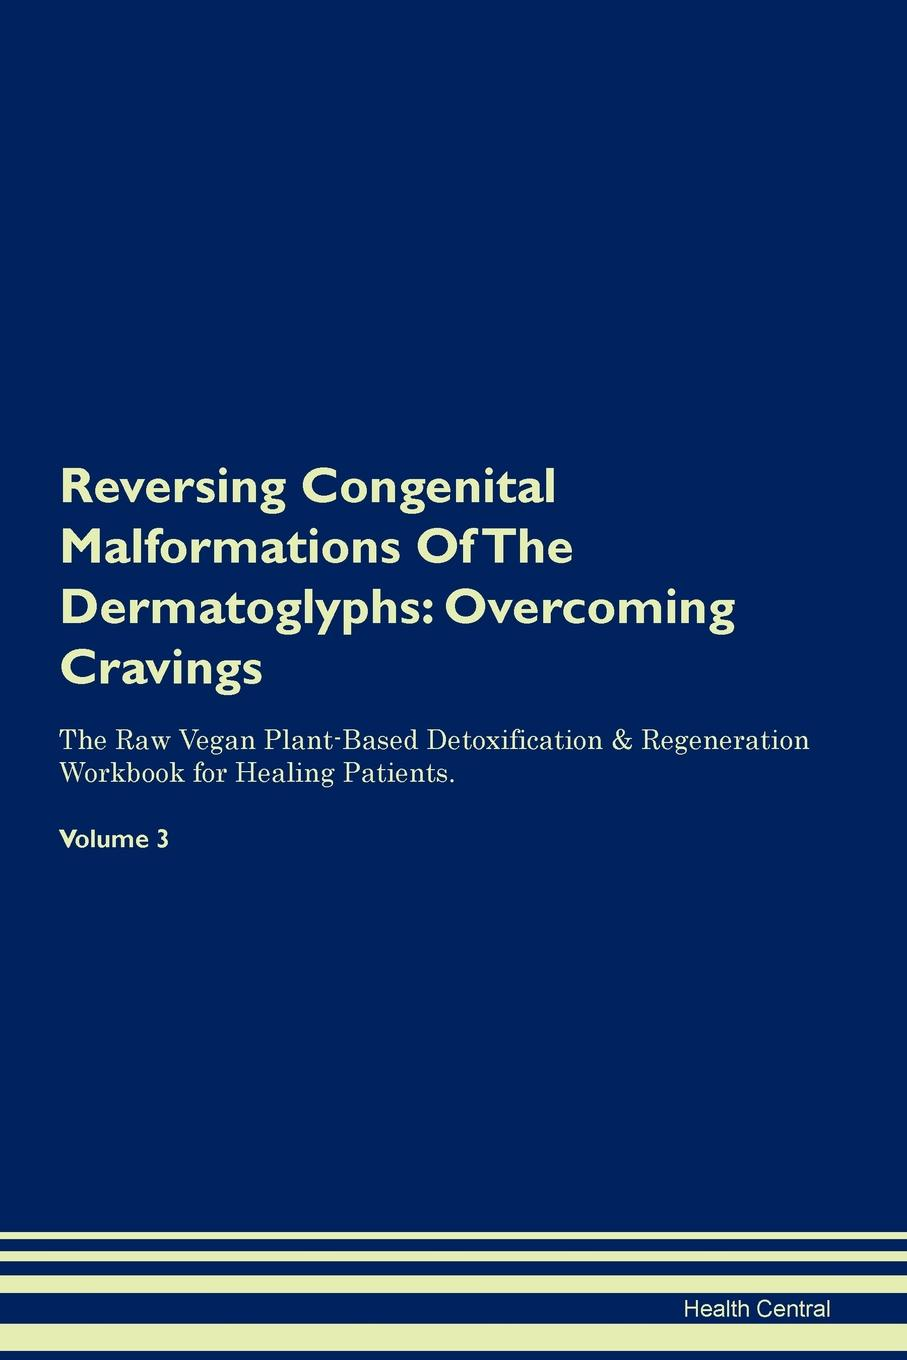 Health Central Reversing Congenital Malformations Of The Dermatoglyphs. Overcoming Cravings The Raw Vegan Plant-Based Detoxification . Regeneration Workbook for Healing Patients. Volume 3 dan matthews online business all in one for dummies